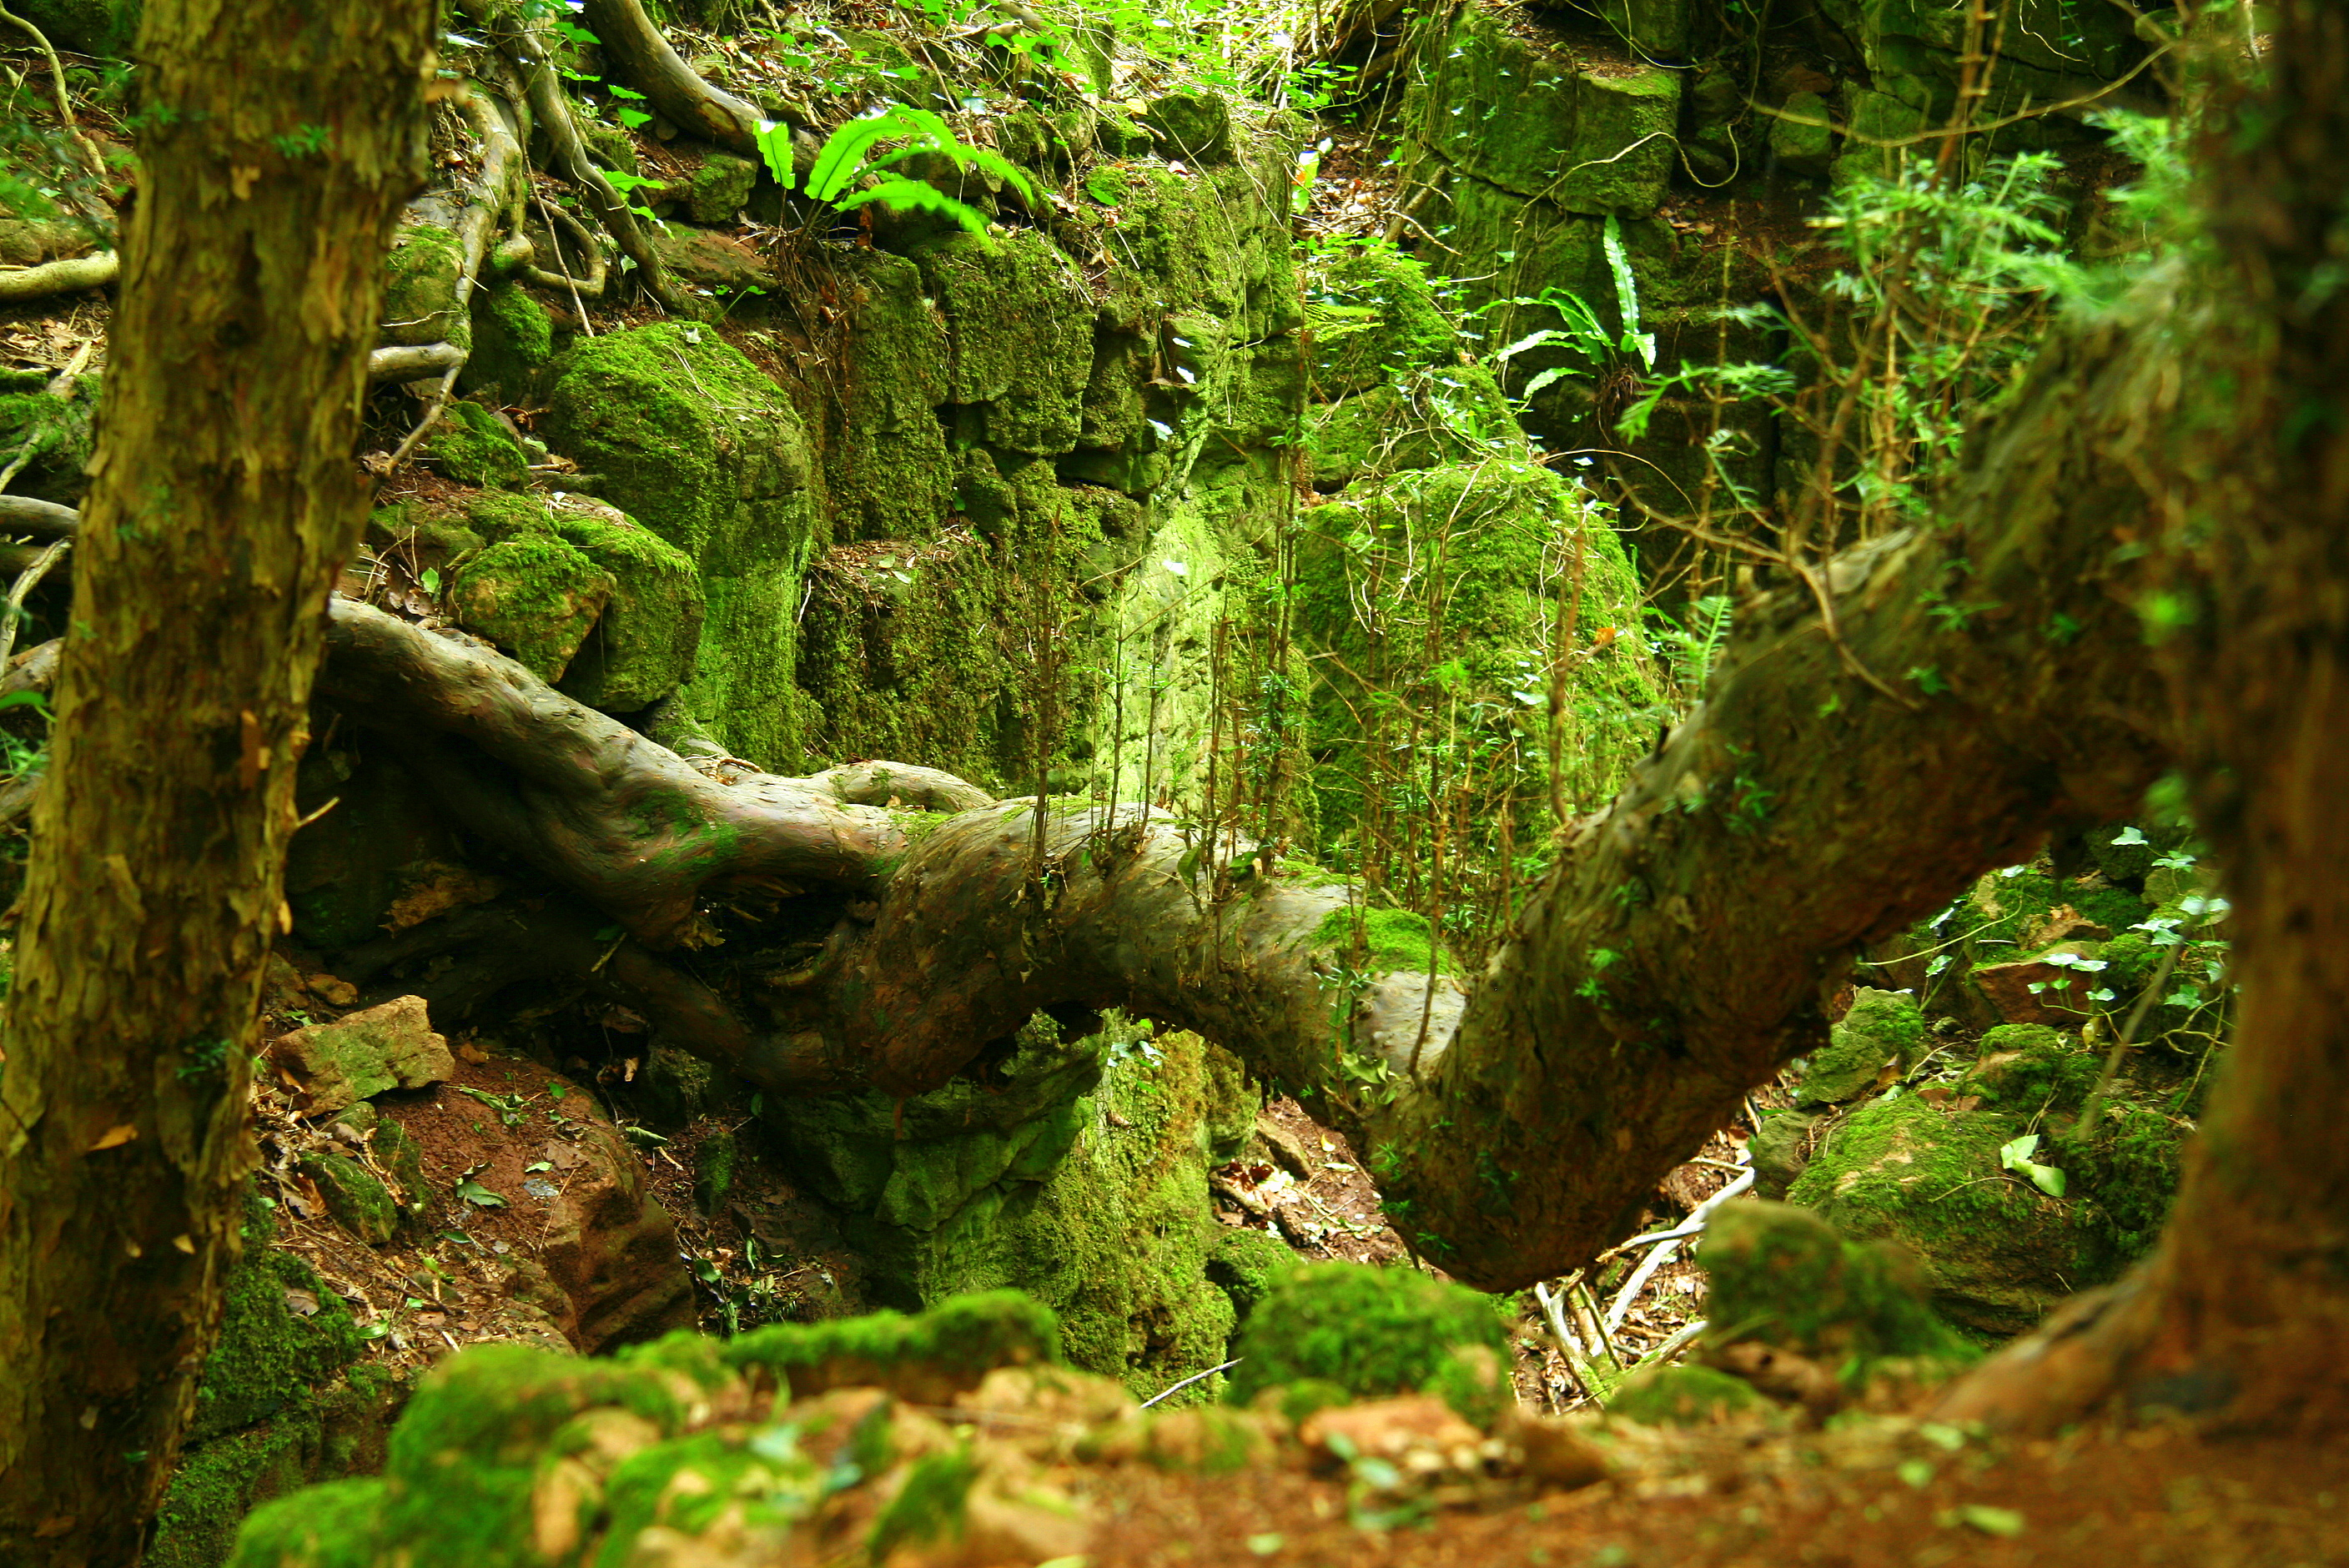 Old Wood Wallpaper Hd Puzzlewood Forest In England Thousand Wonders